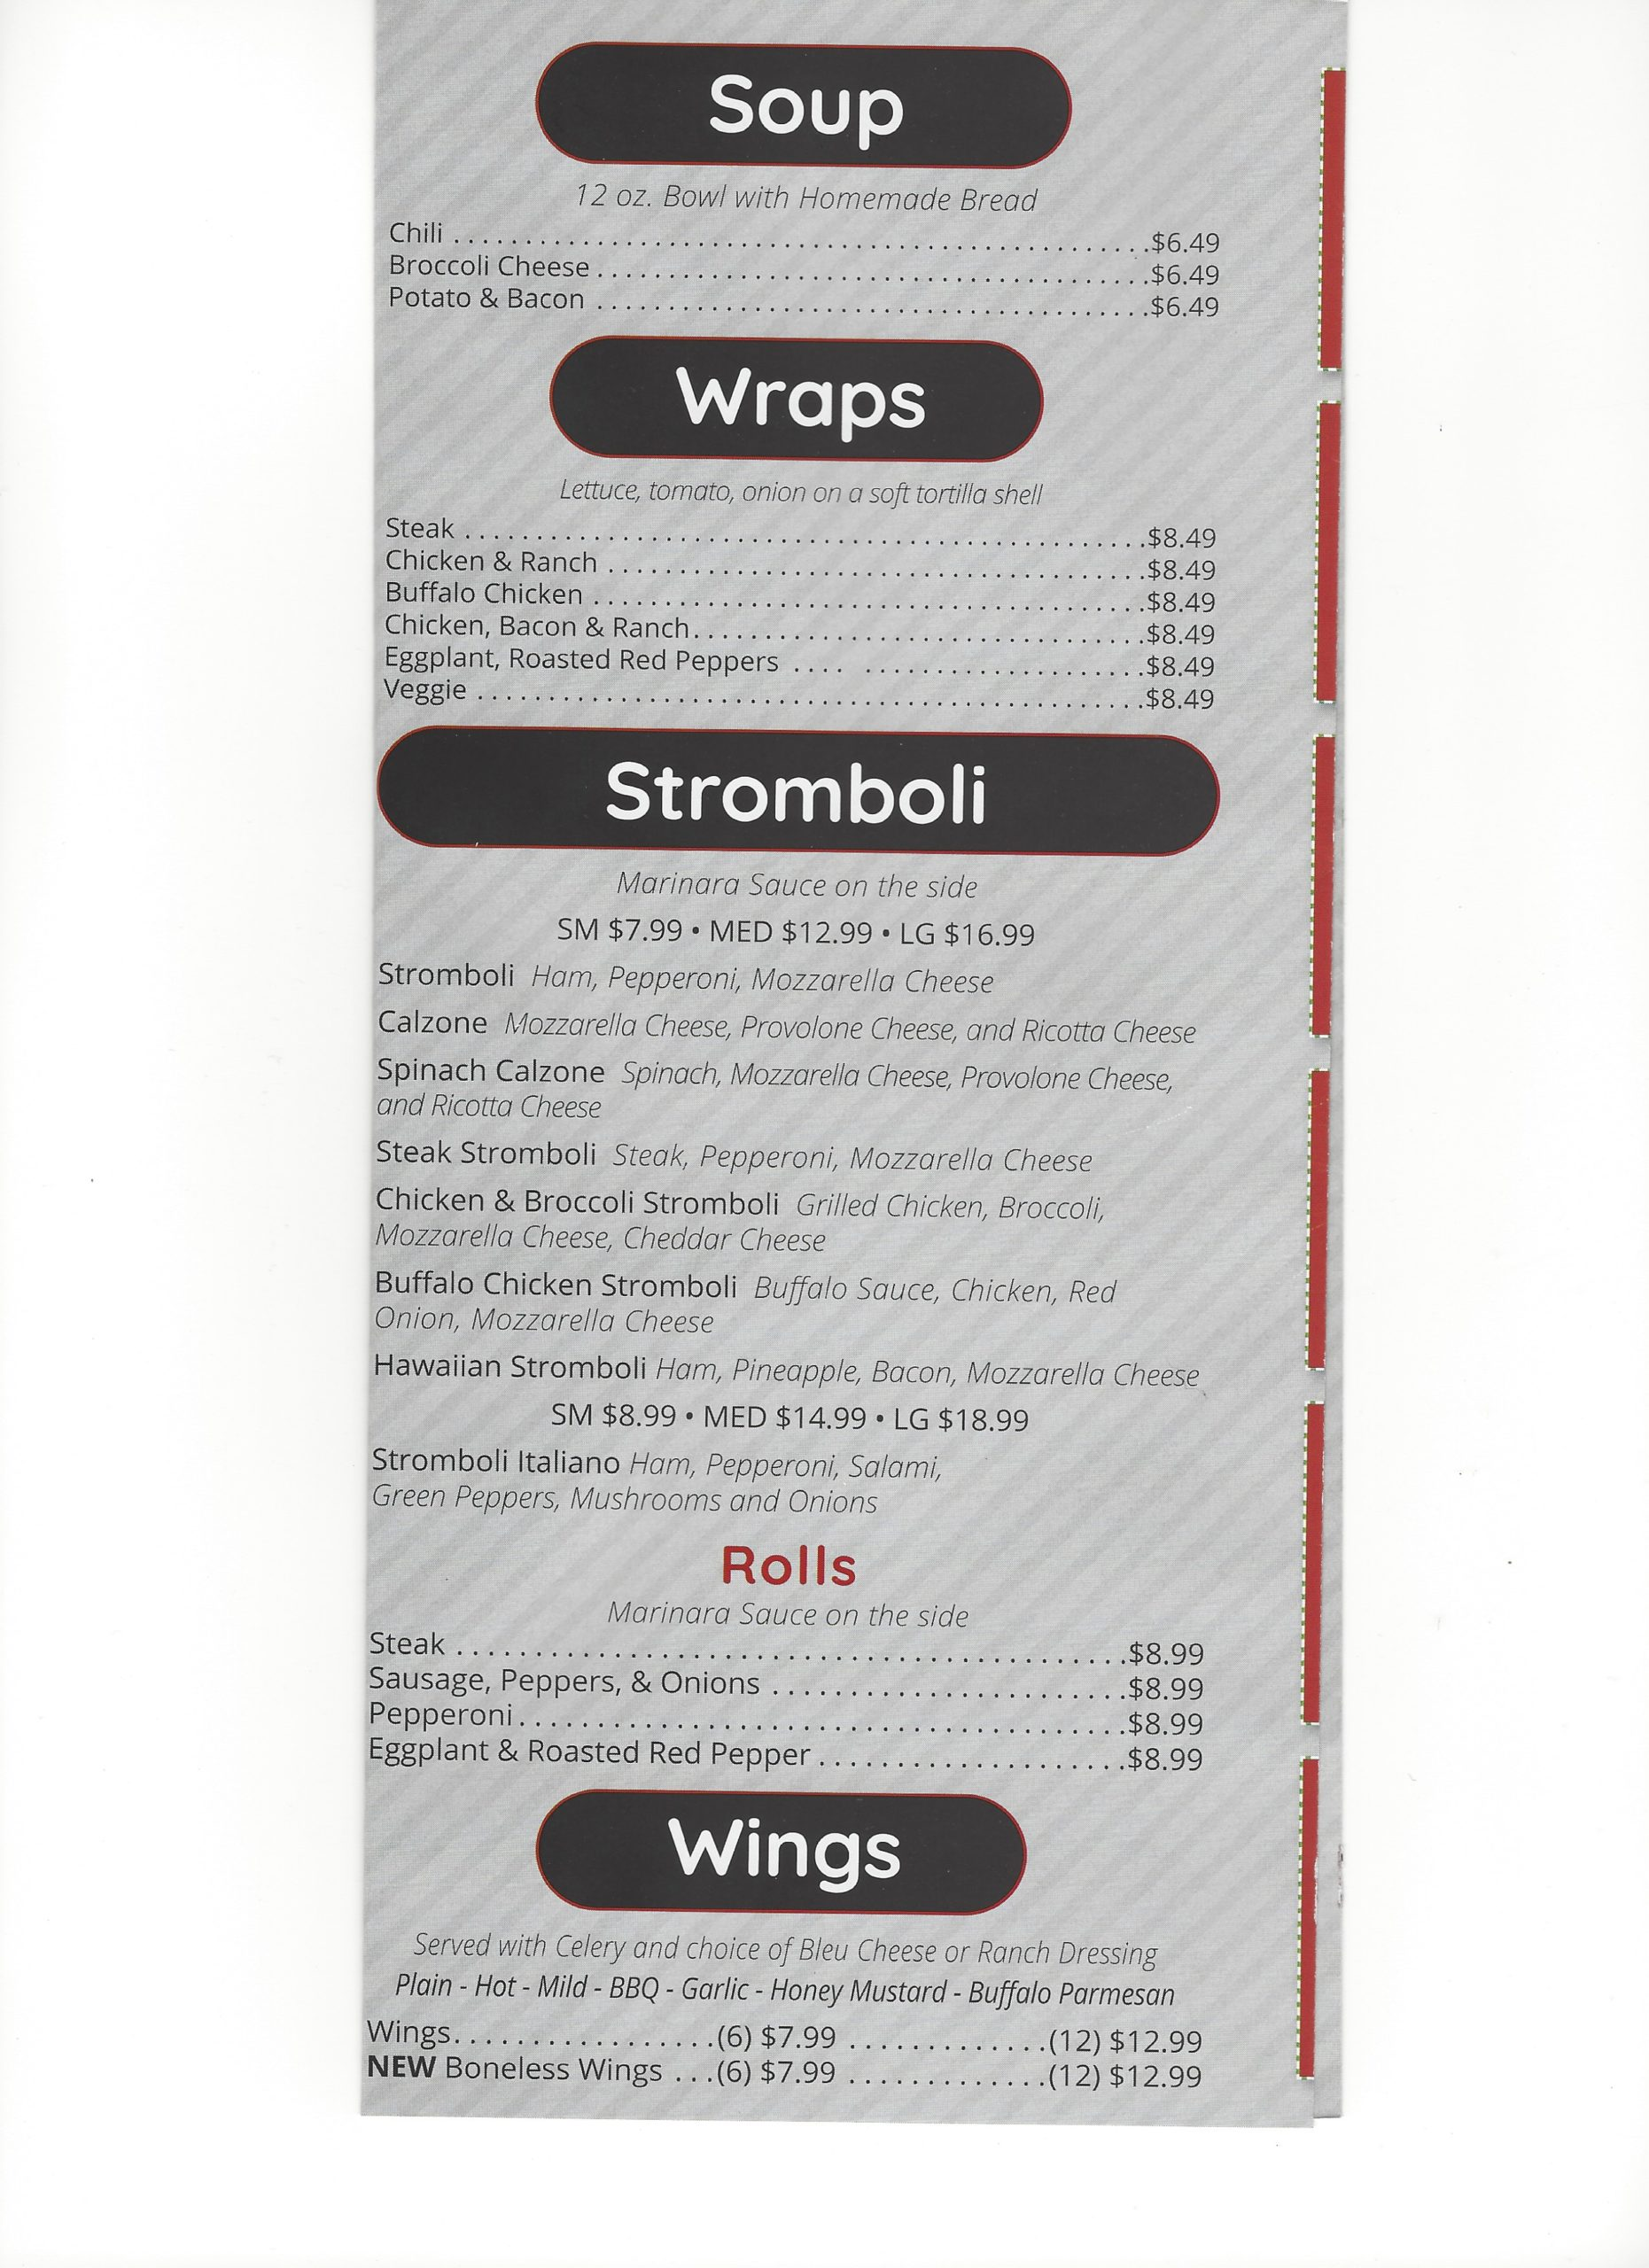 Soup, Wraps, Strombolis and Wings